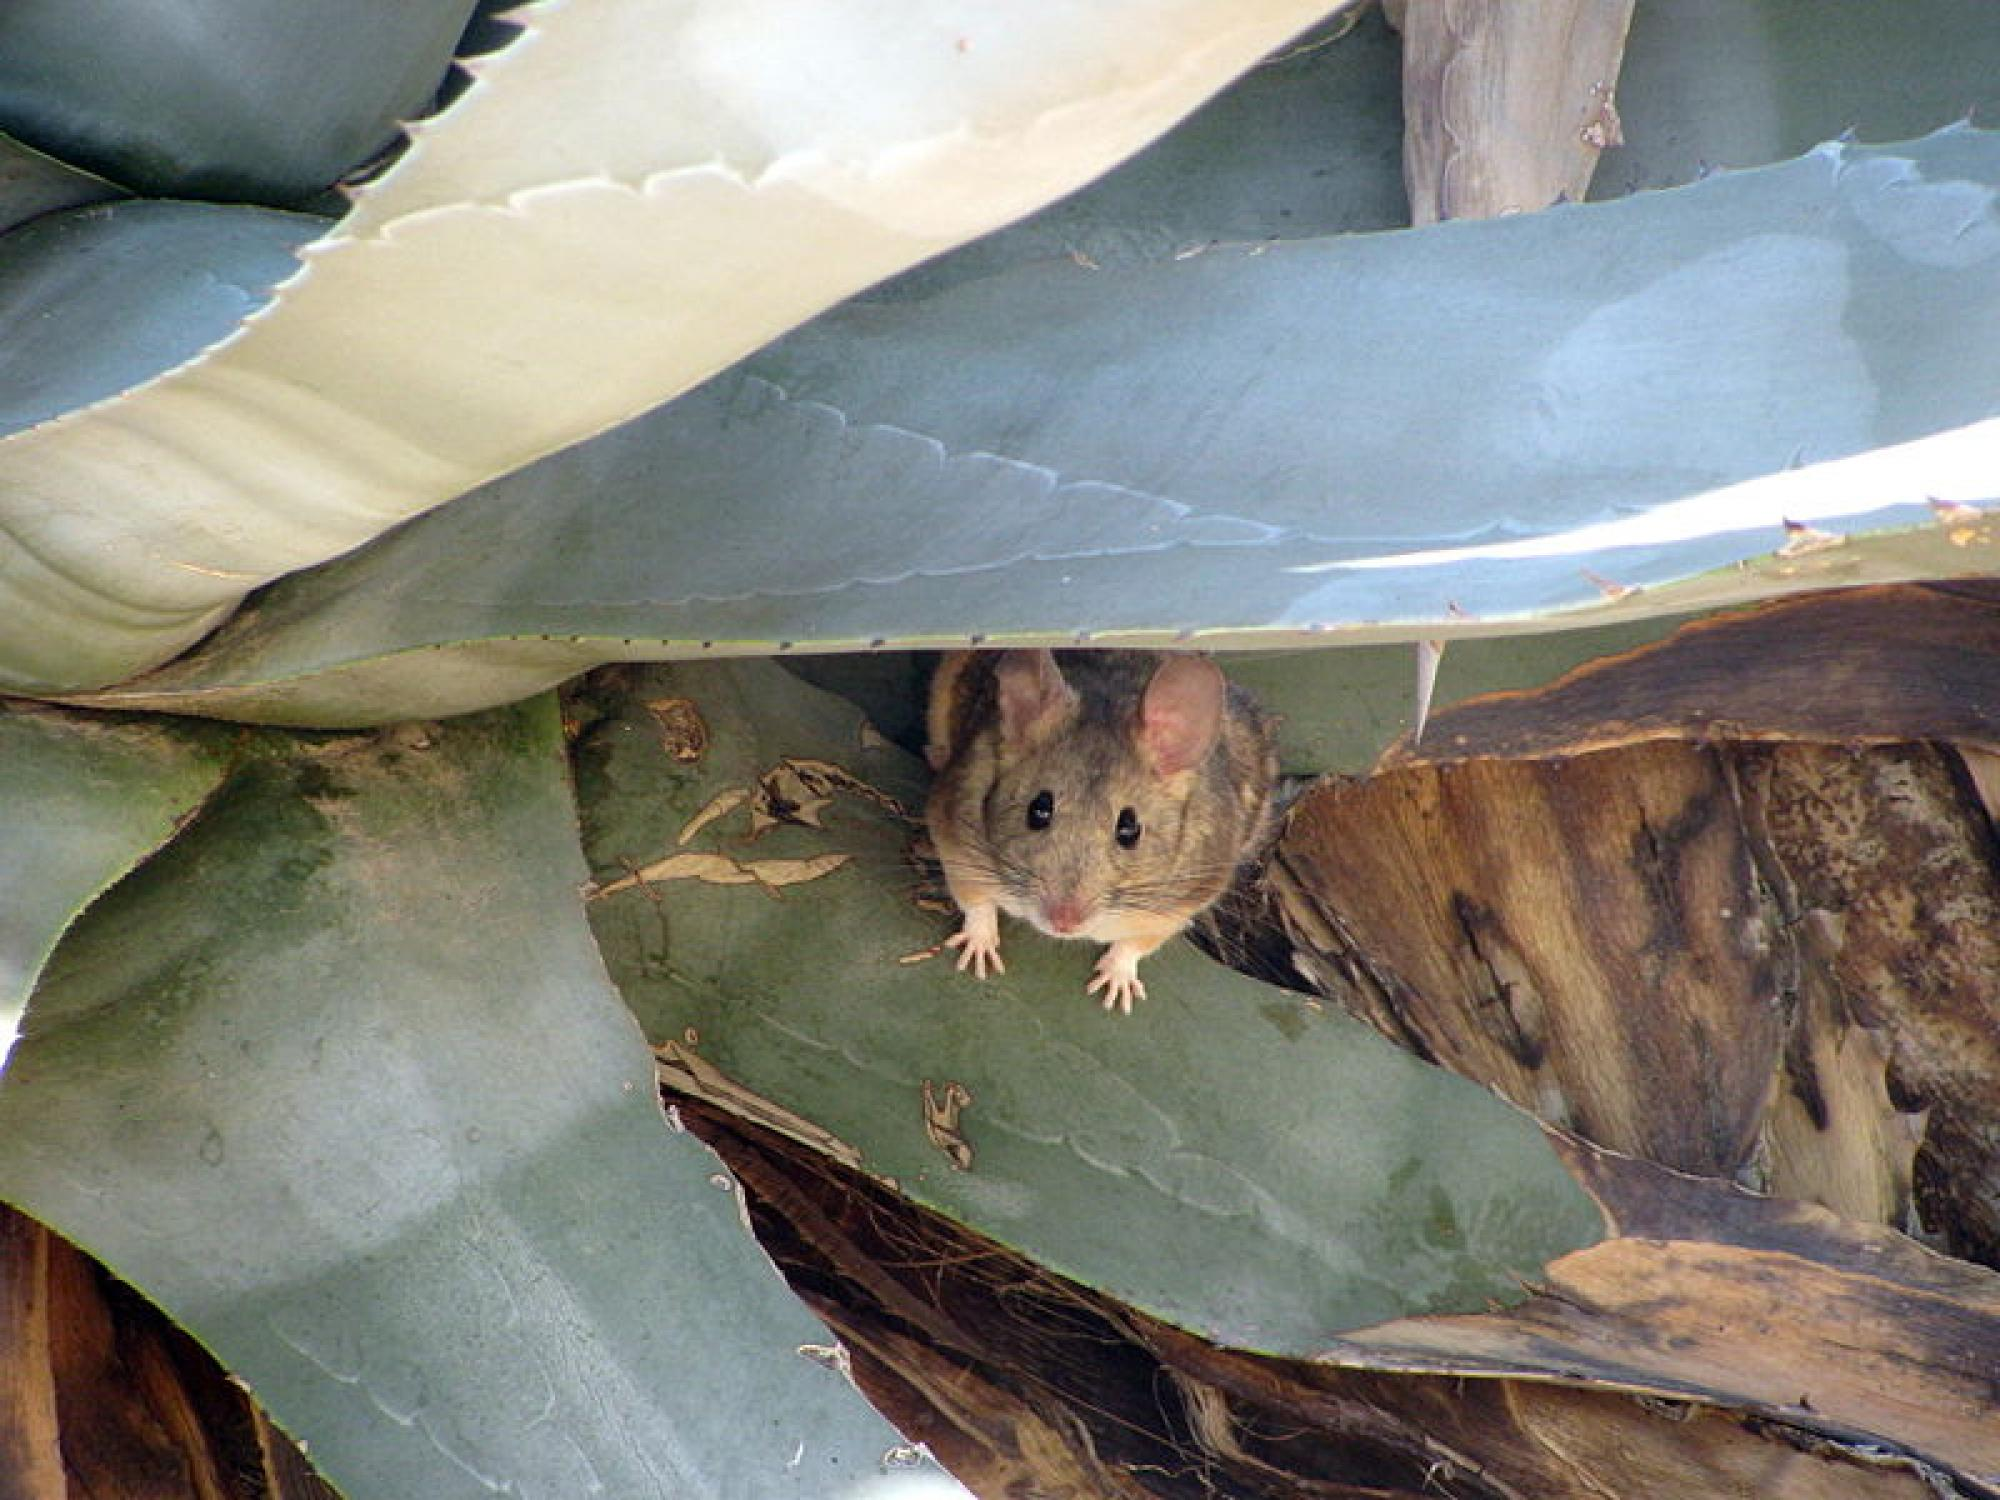 Desert Packrat  in a Century Plant  in Joshua Tree, California, USA, April 2015. The packrat is one of two small mammals and one of six species that will have their genomes sequenced for the project.